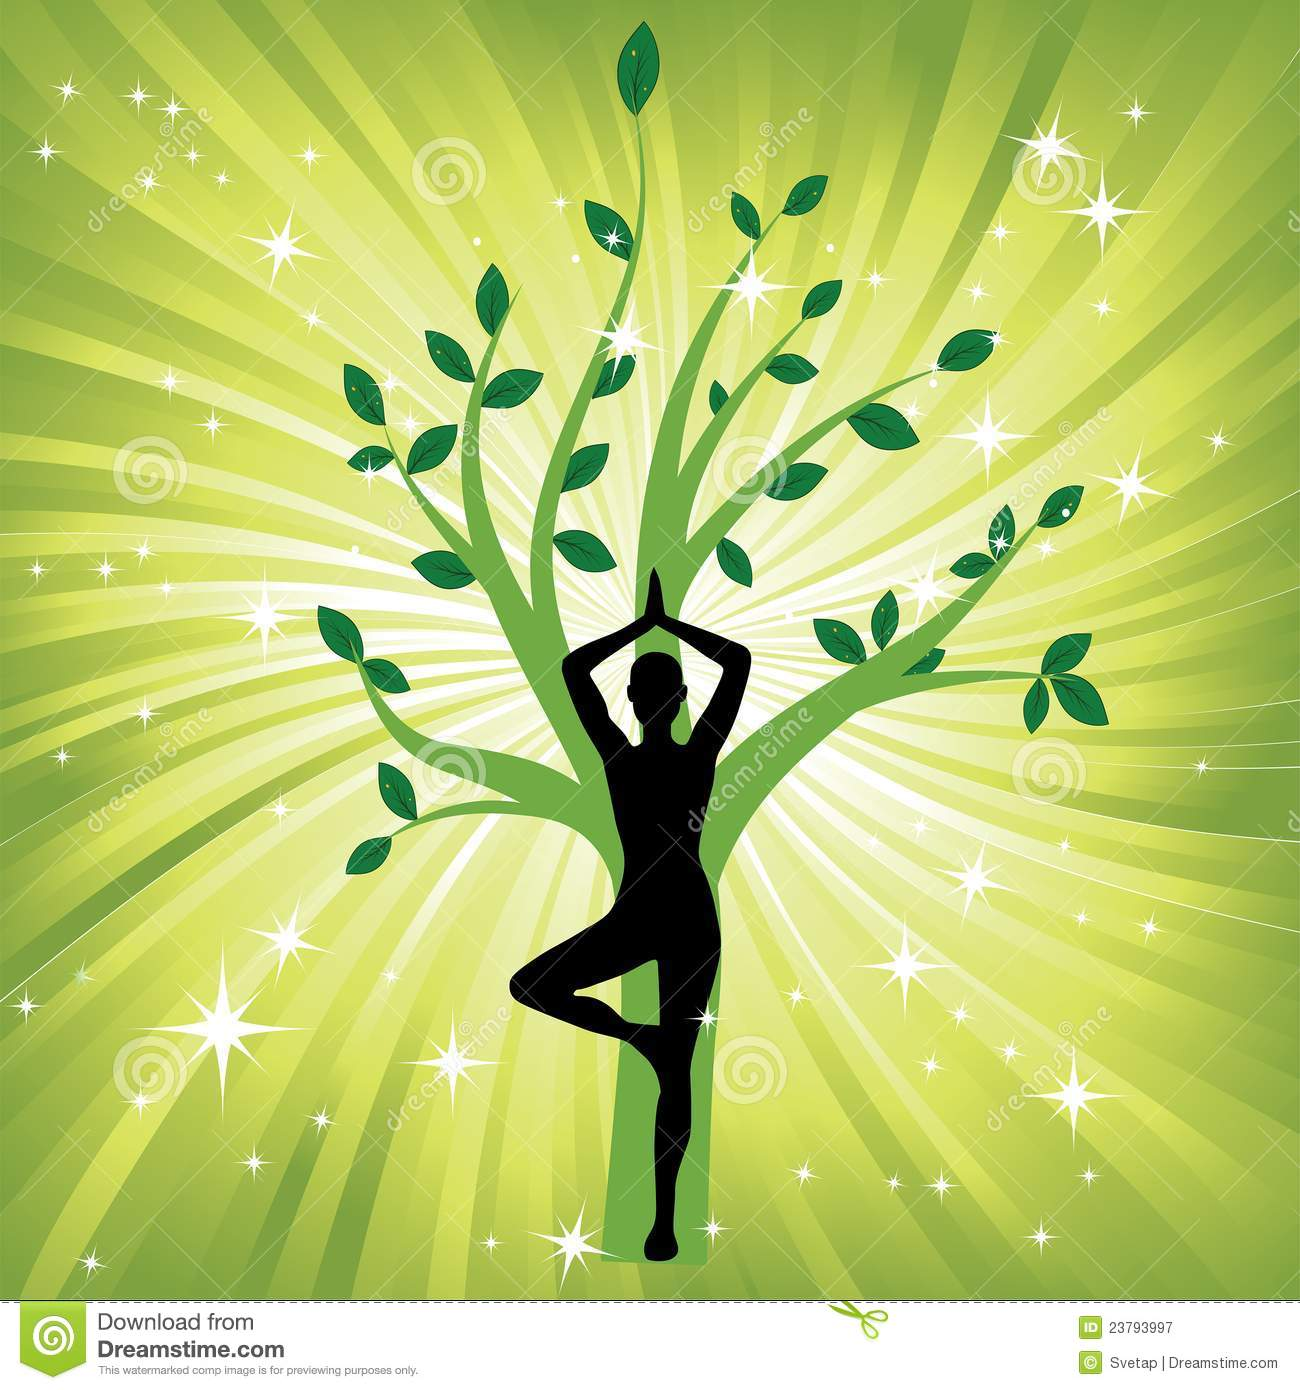 woman-yoga-tree-asana-23793997